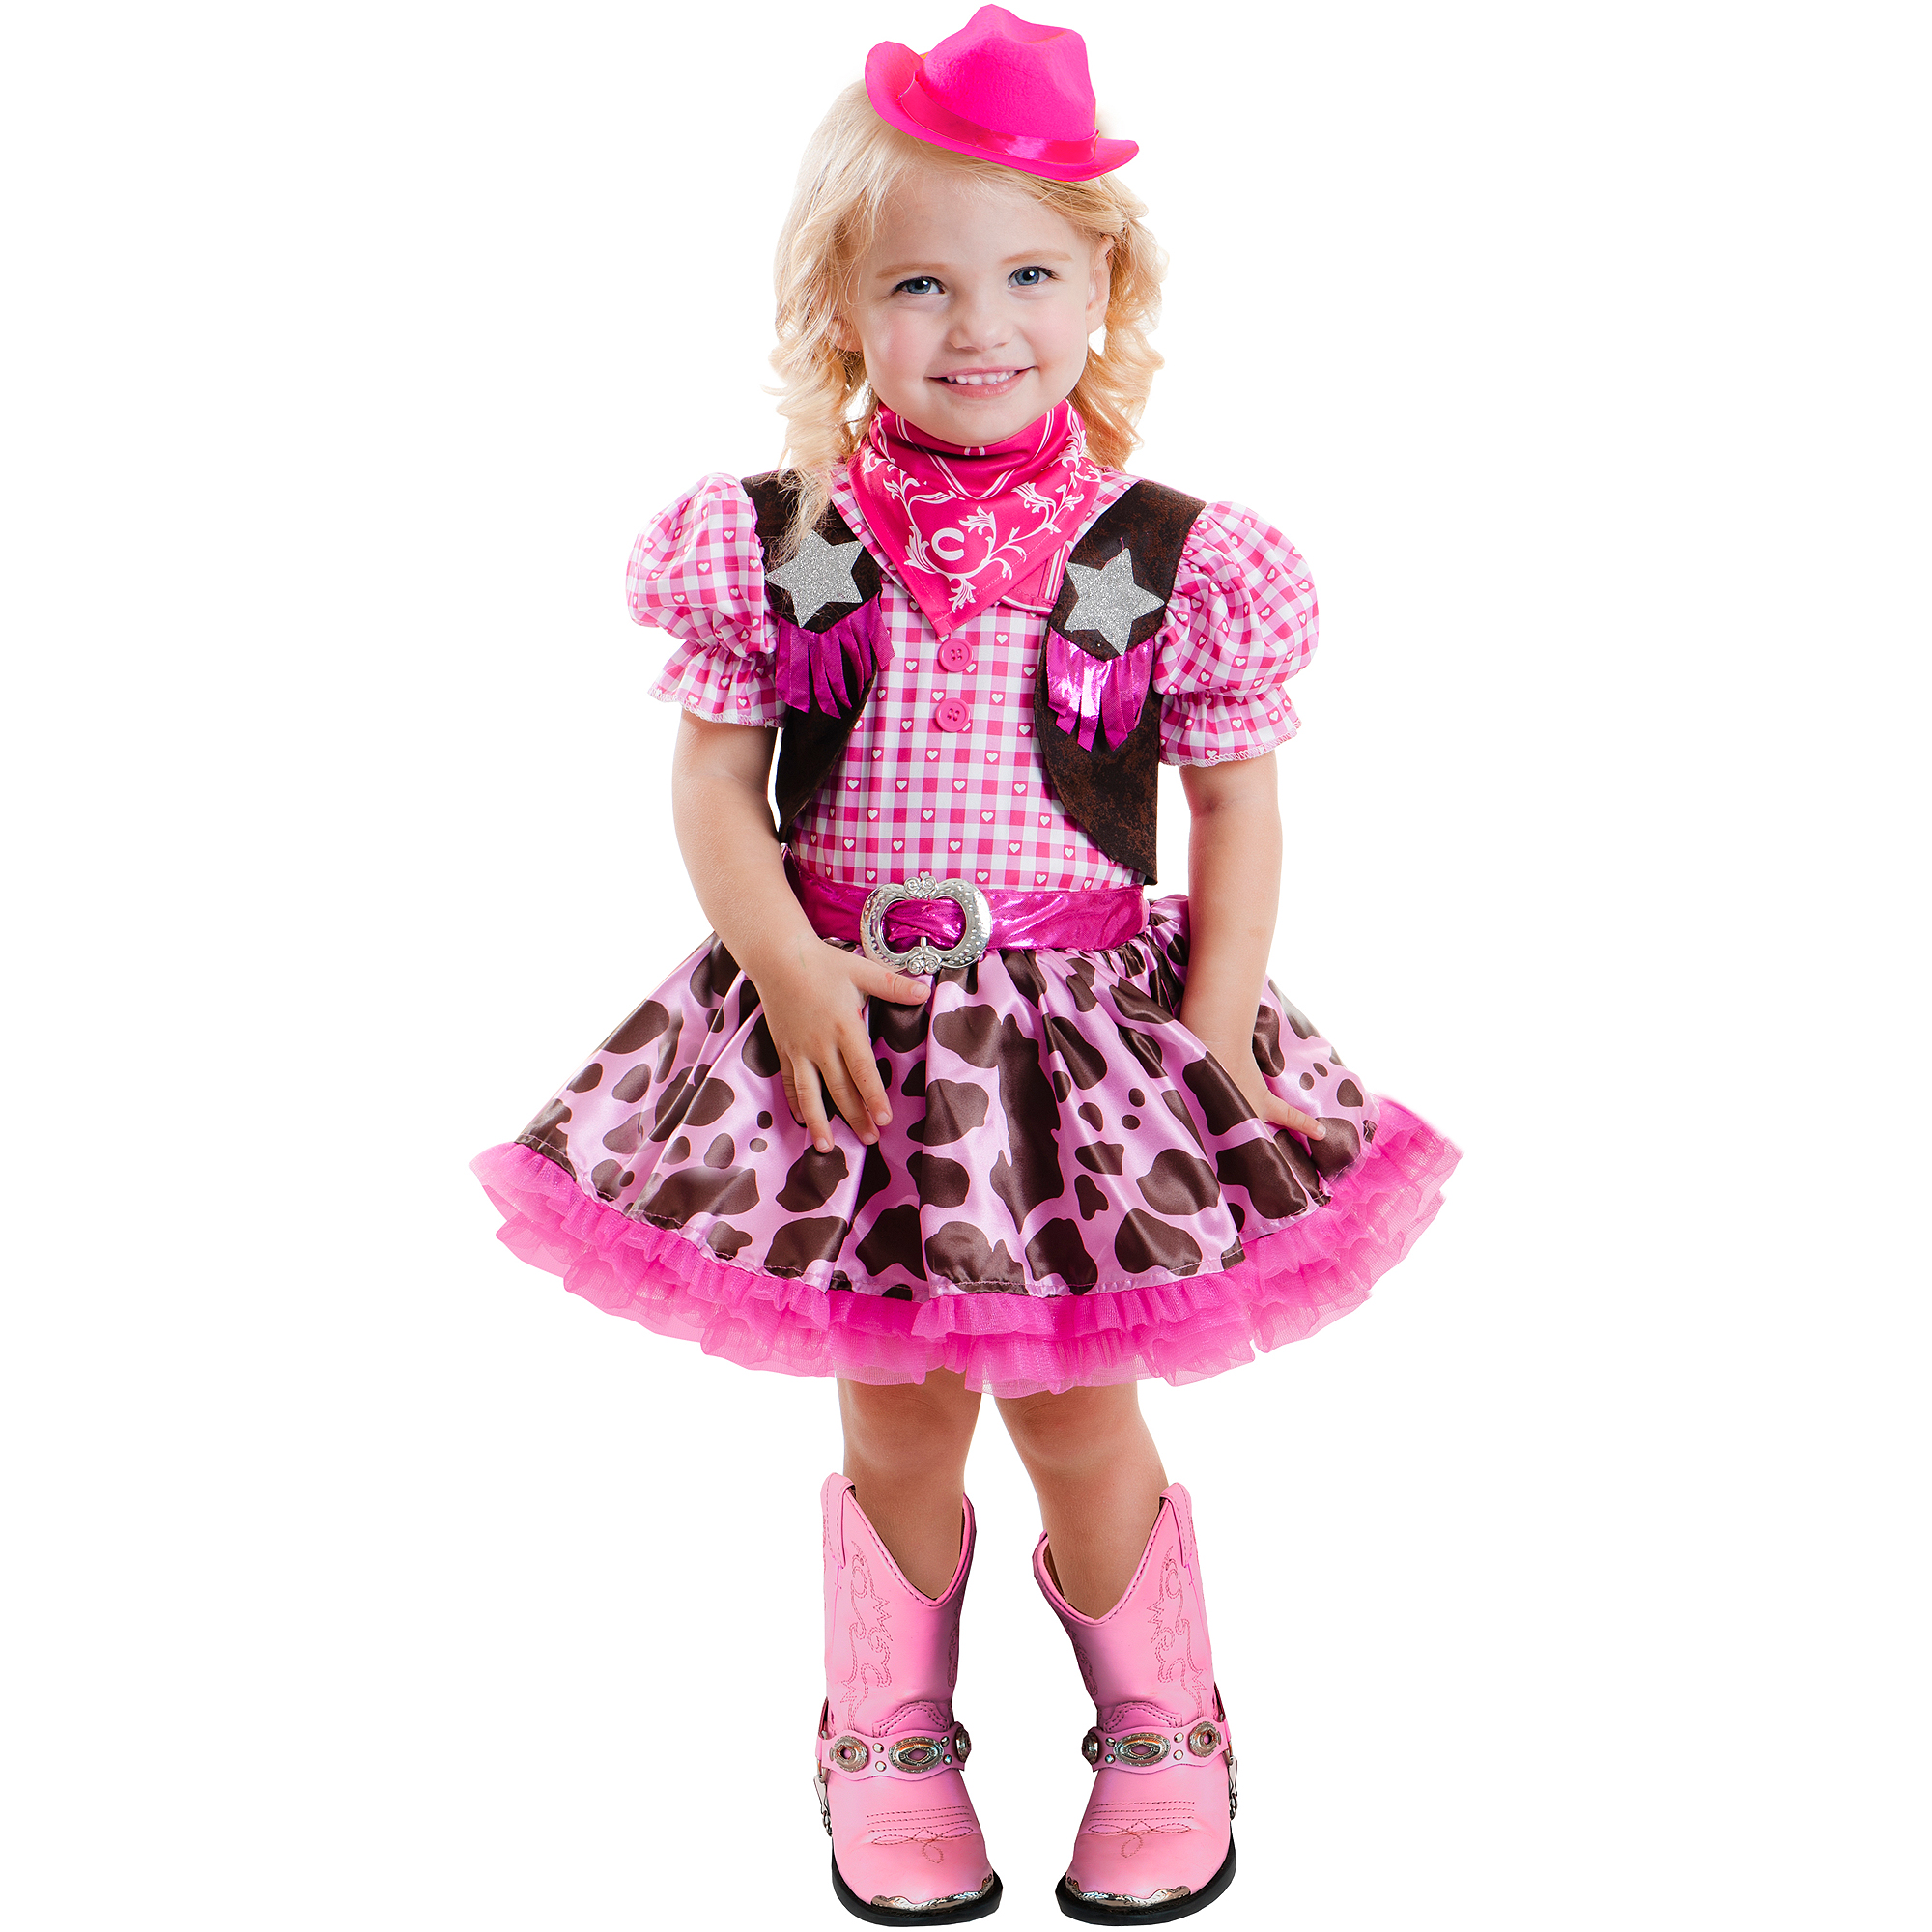 sc 1 st  Walmart.com & Rodeo Princess Toddler Halloween Costume - Walmart.com